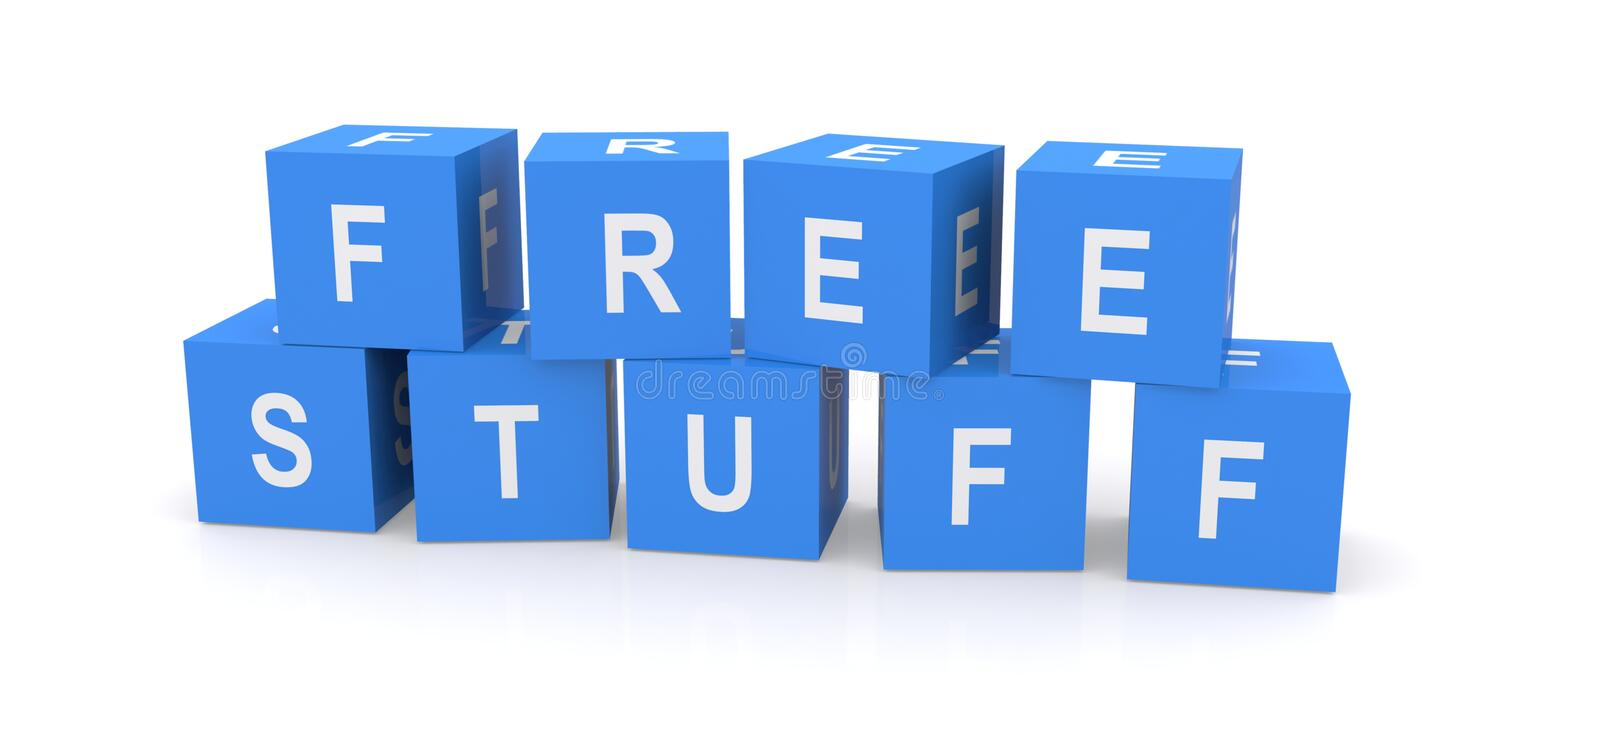 Free stuff sign. 3d illustration of letter blocks spelling free stuff, white background stock photo